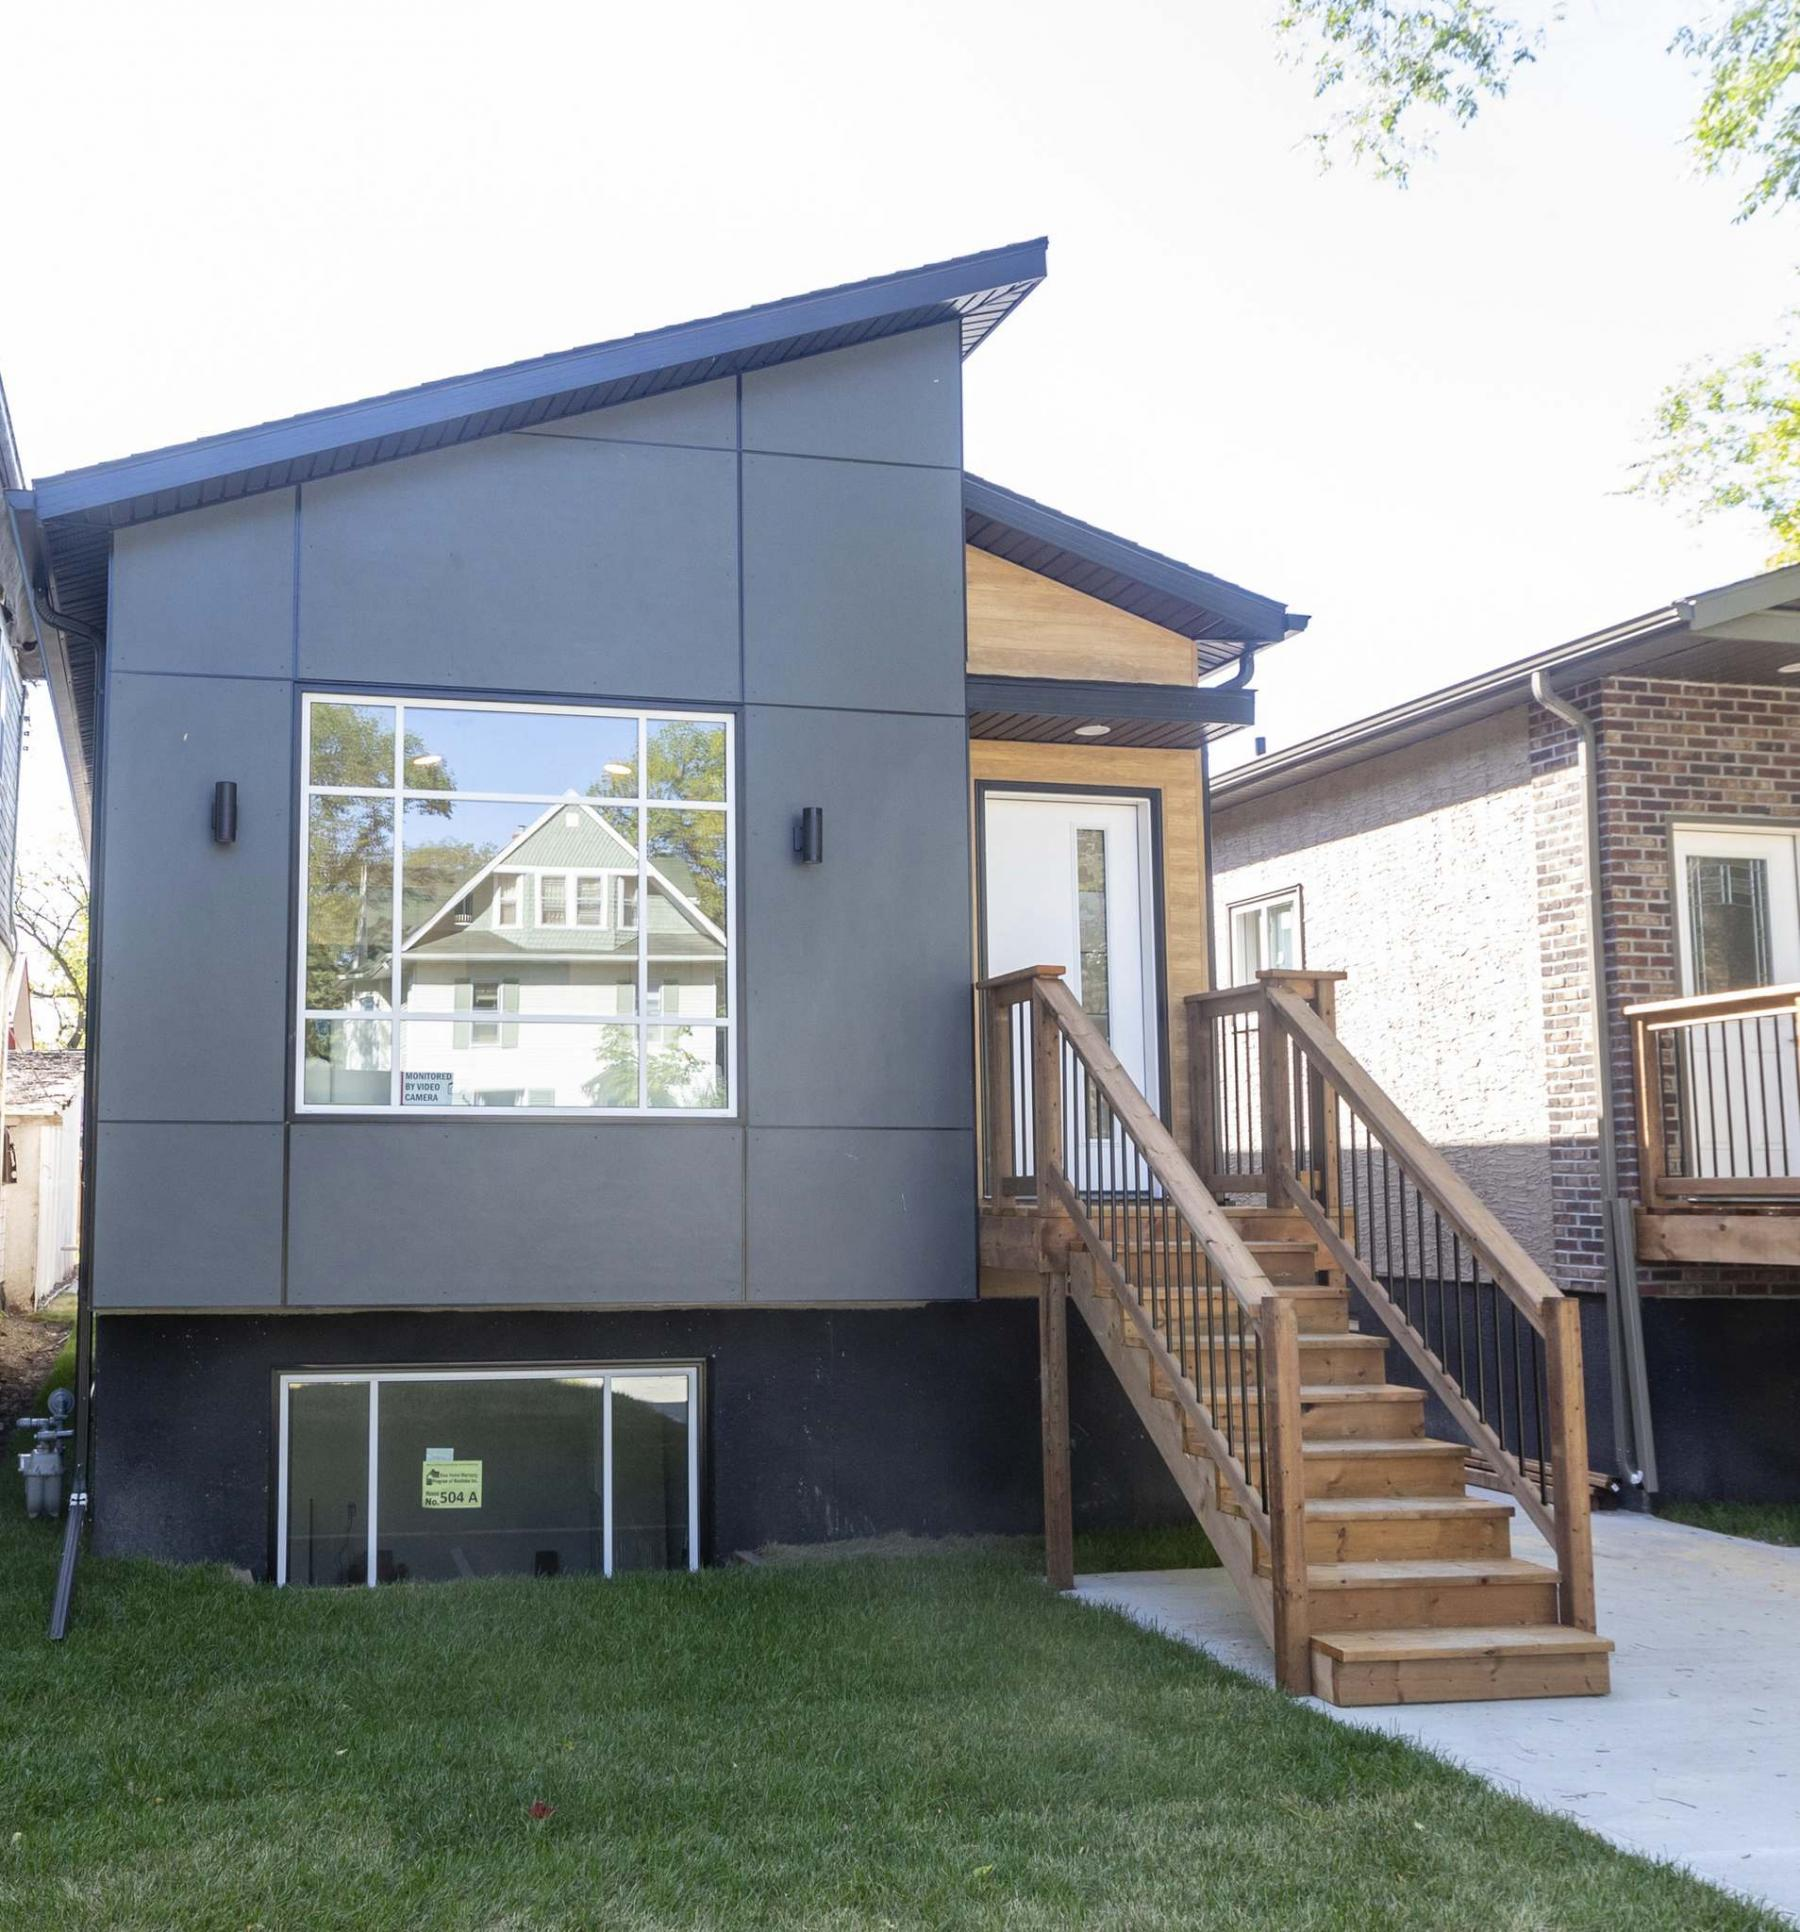 <p>SASHA SEFTER / WINNIPEG FREE PRESS</p><p>The front yard of 504 Beresford Avenue, a new home for sale in Lord Roberts.</p></p></p>